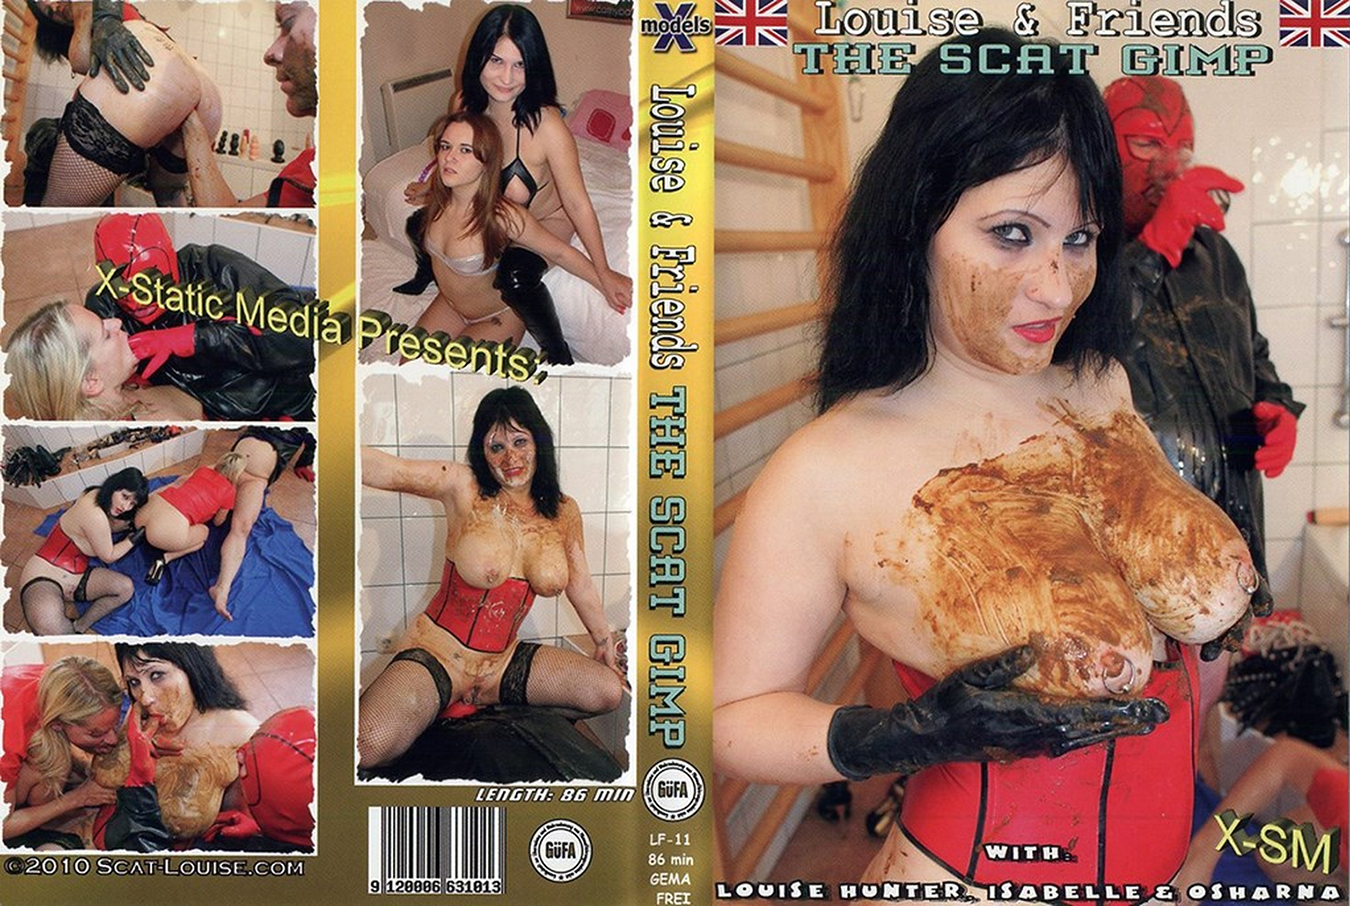 [Louise and Friends] The Scat Gimp [X-Models] [Scat, Pissing, Enema, Vomit, Lesbian, Teen, Mature, Sex Toys, Fisting]